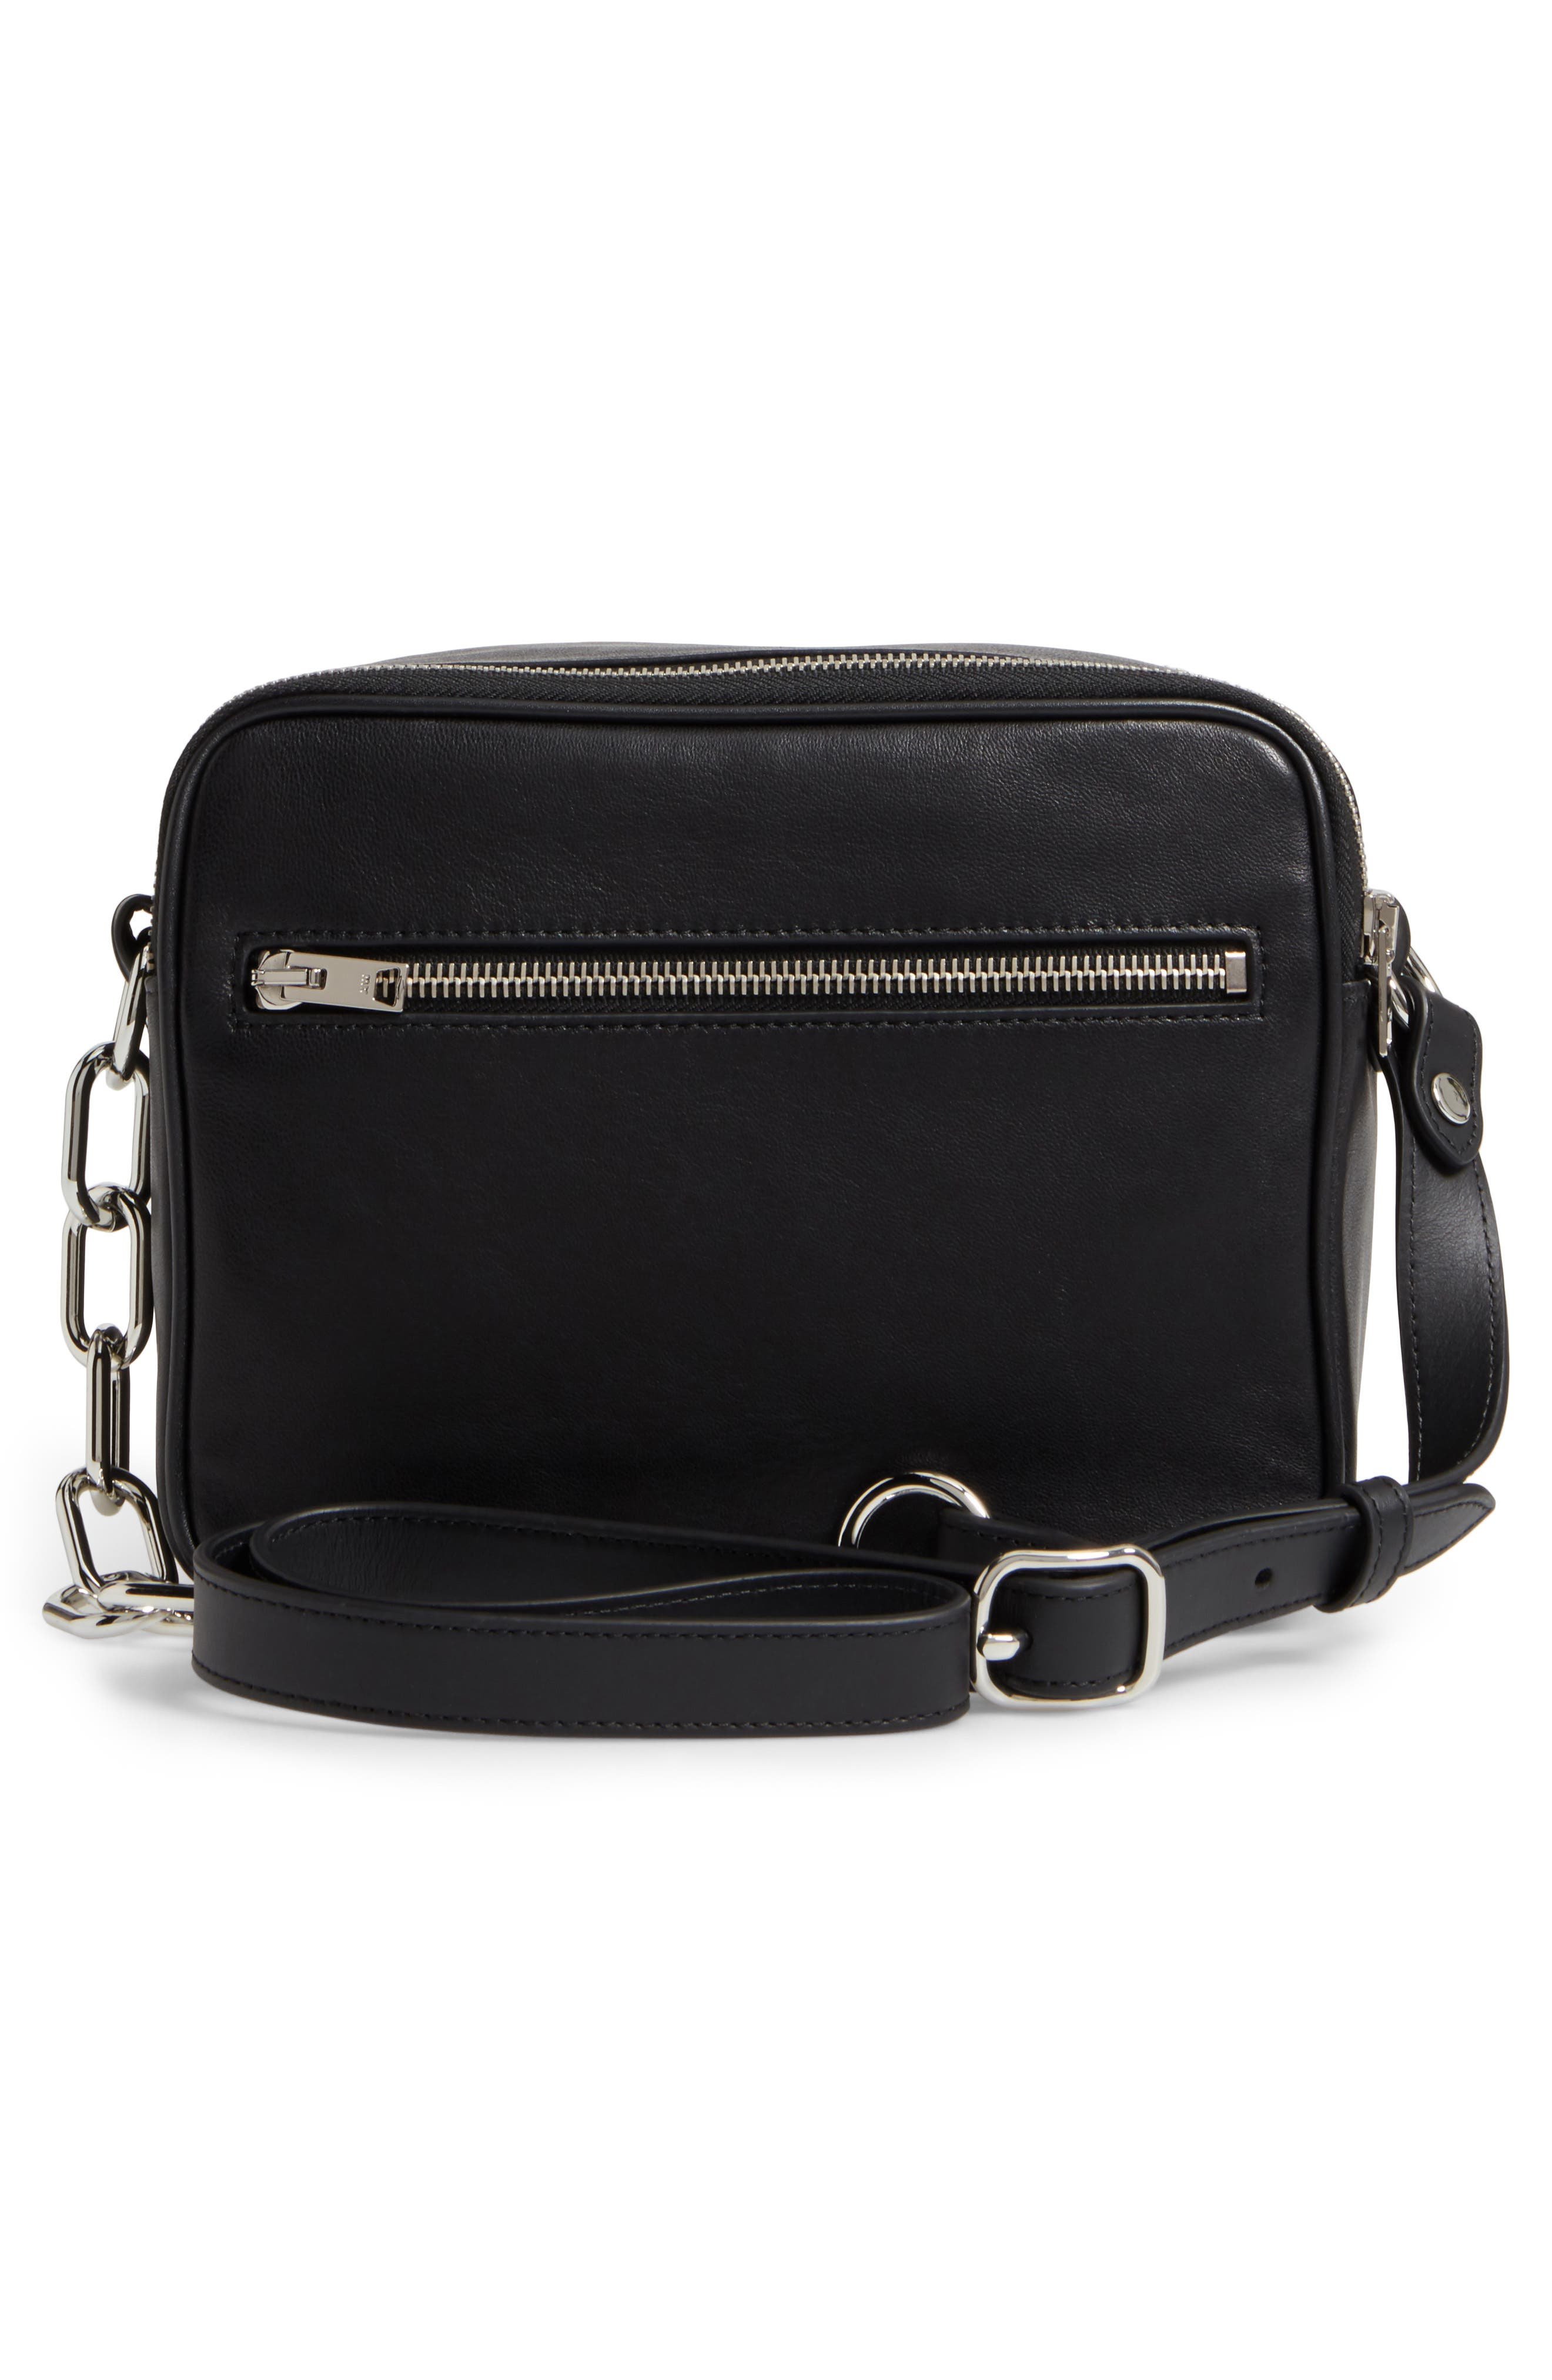 Washed Leather Crossbody Bag,                             Alternate thumbnail 3, color,                             BLACK